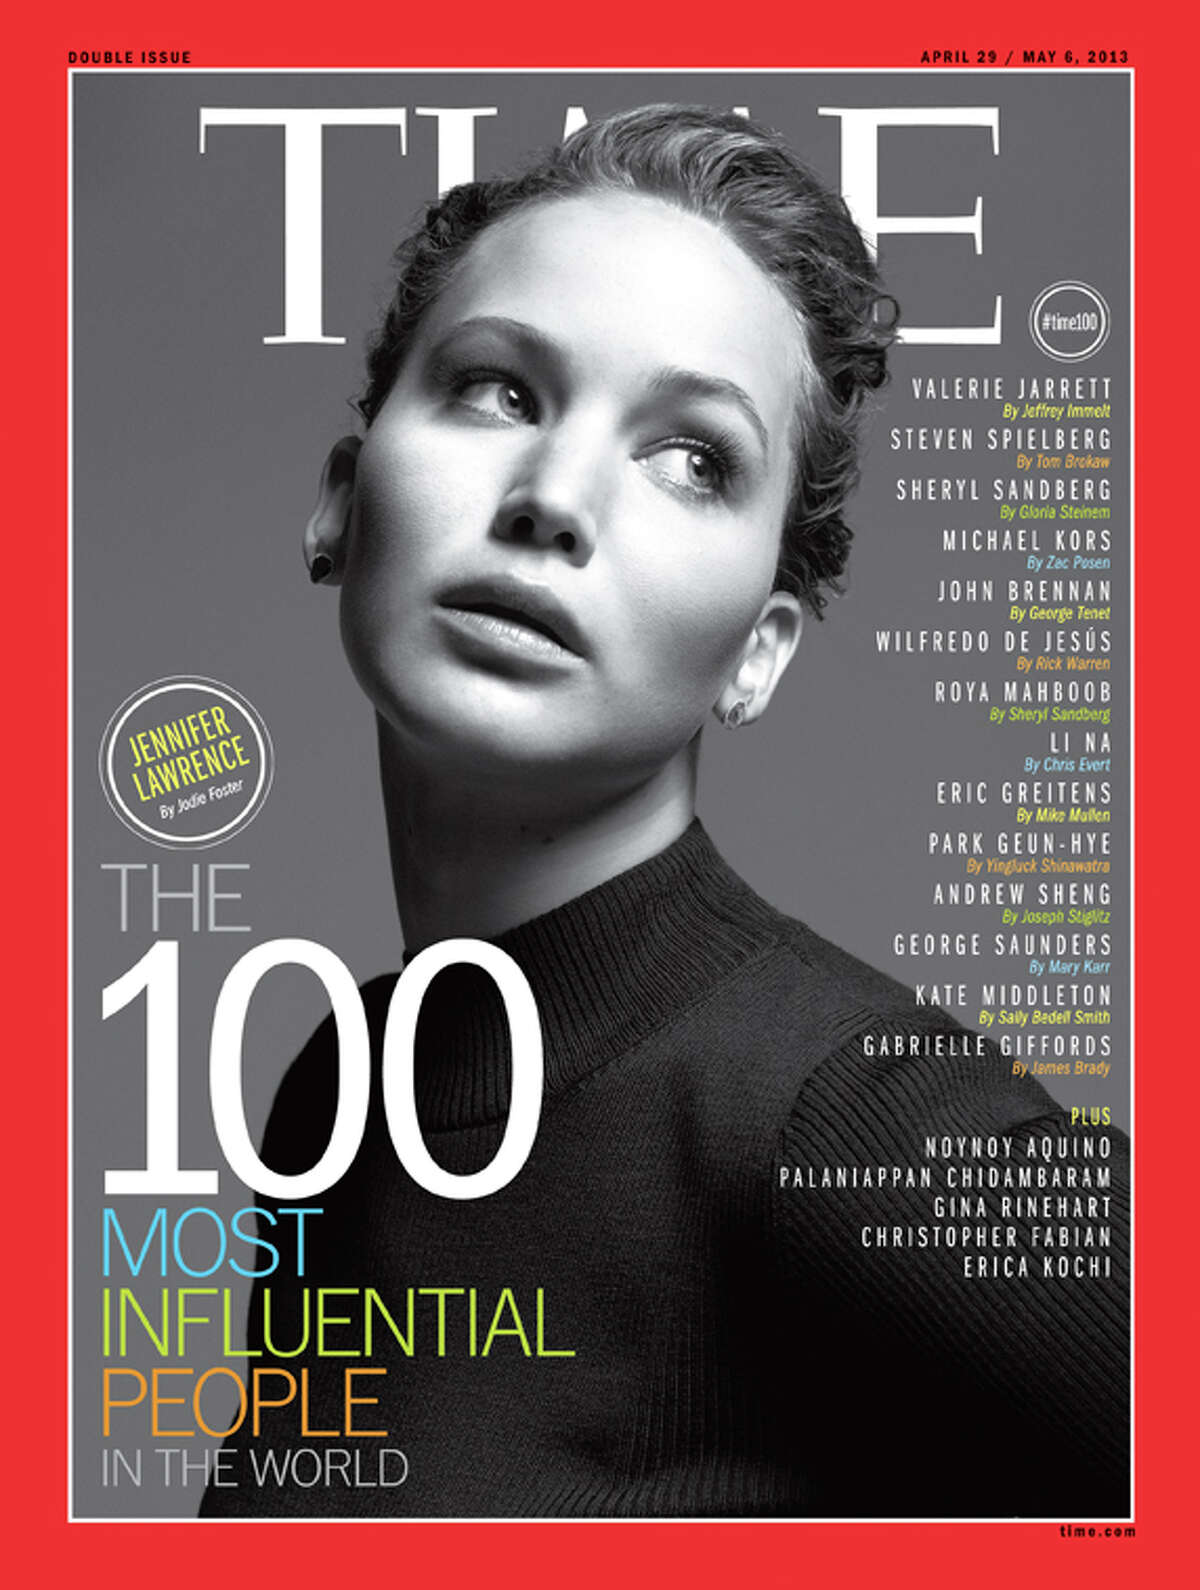 Jennifer Lawrence on the cover of Time's 100 Most Influential People In The World.